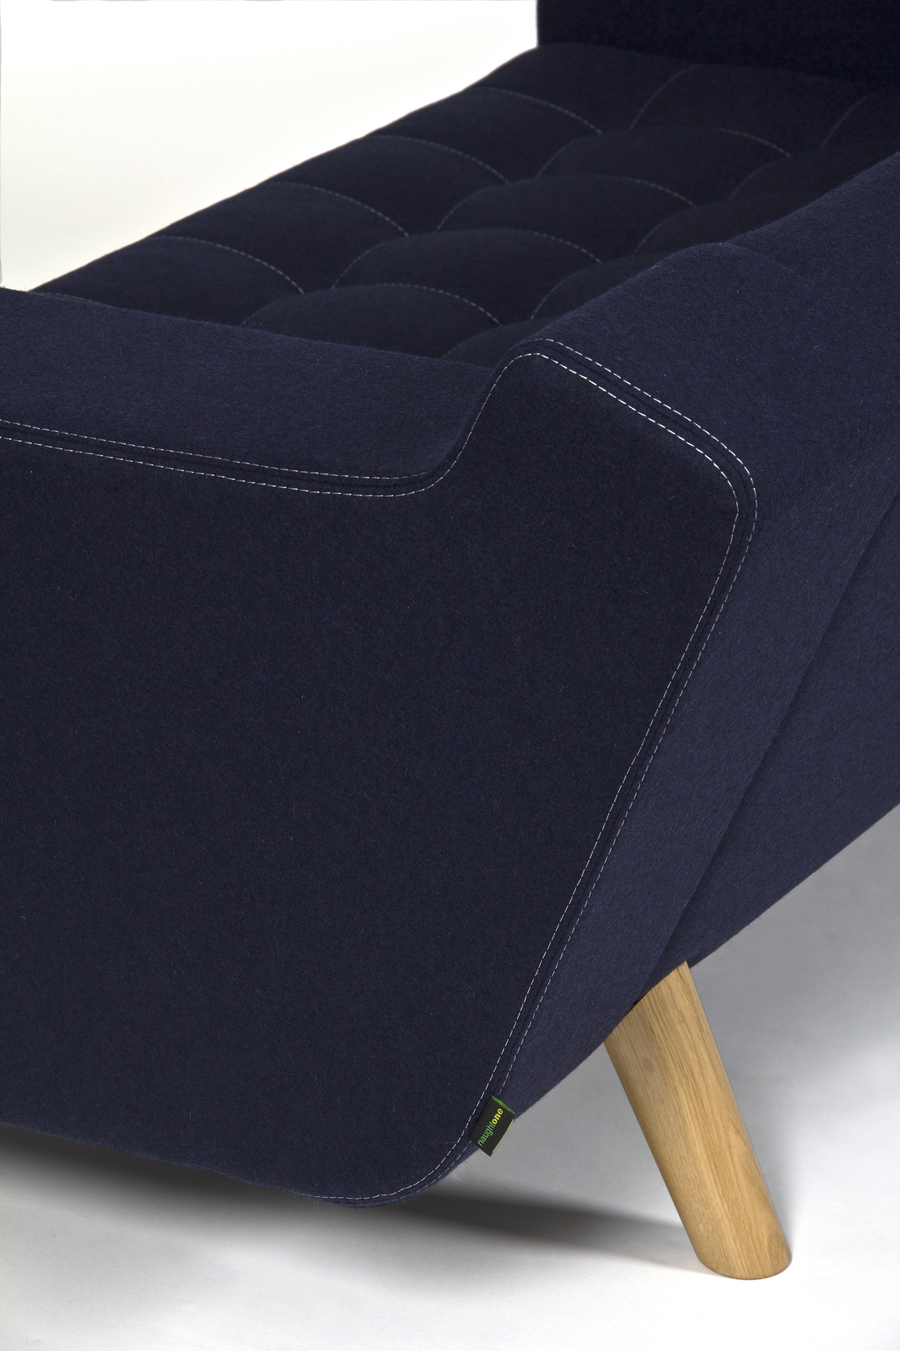 A close-up view from the side of a navy naughtone Portion Sofa with solid walnut legs and white stitching.